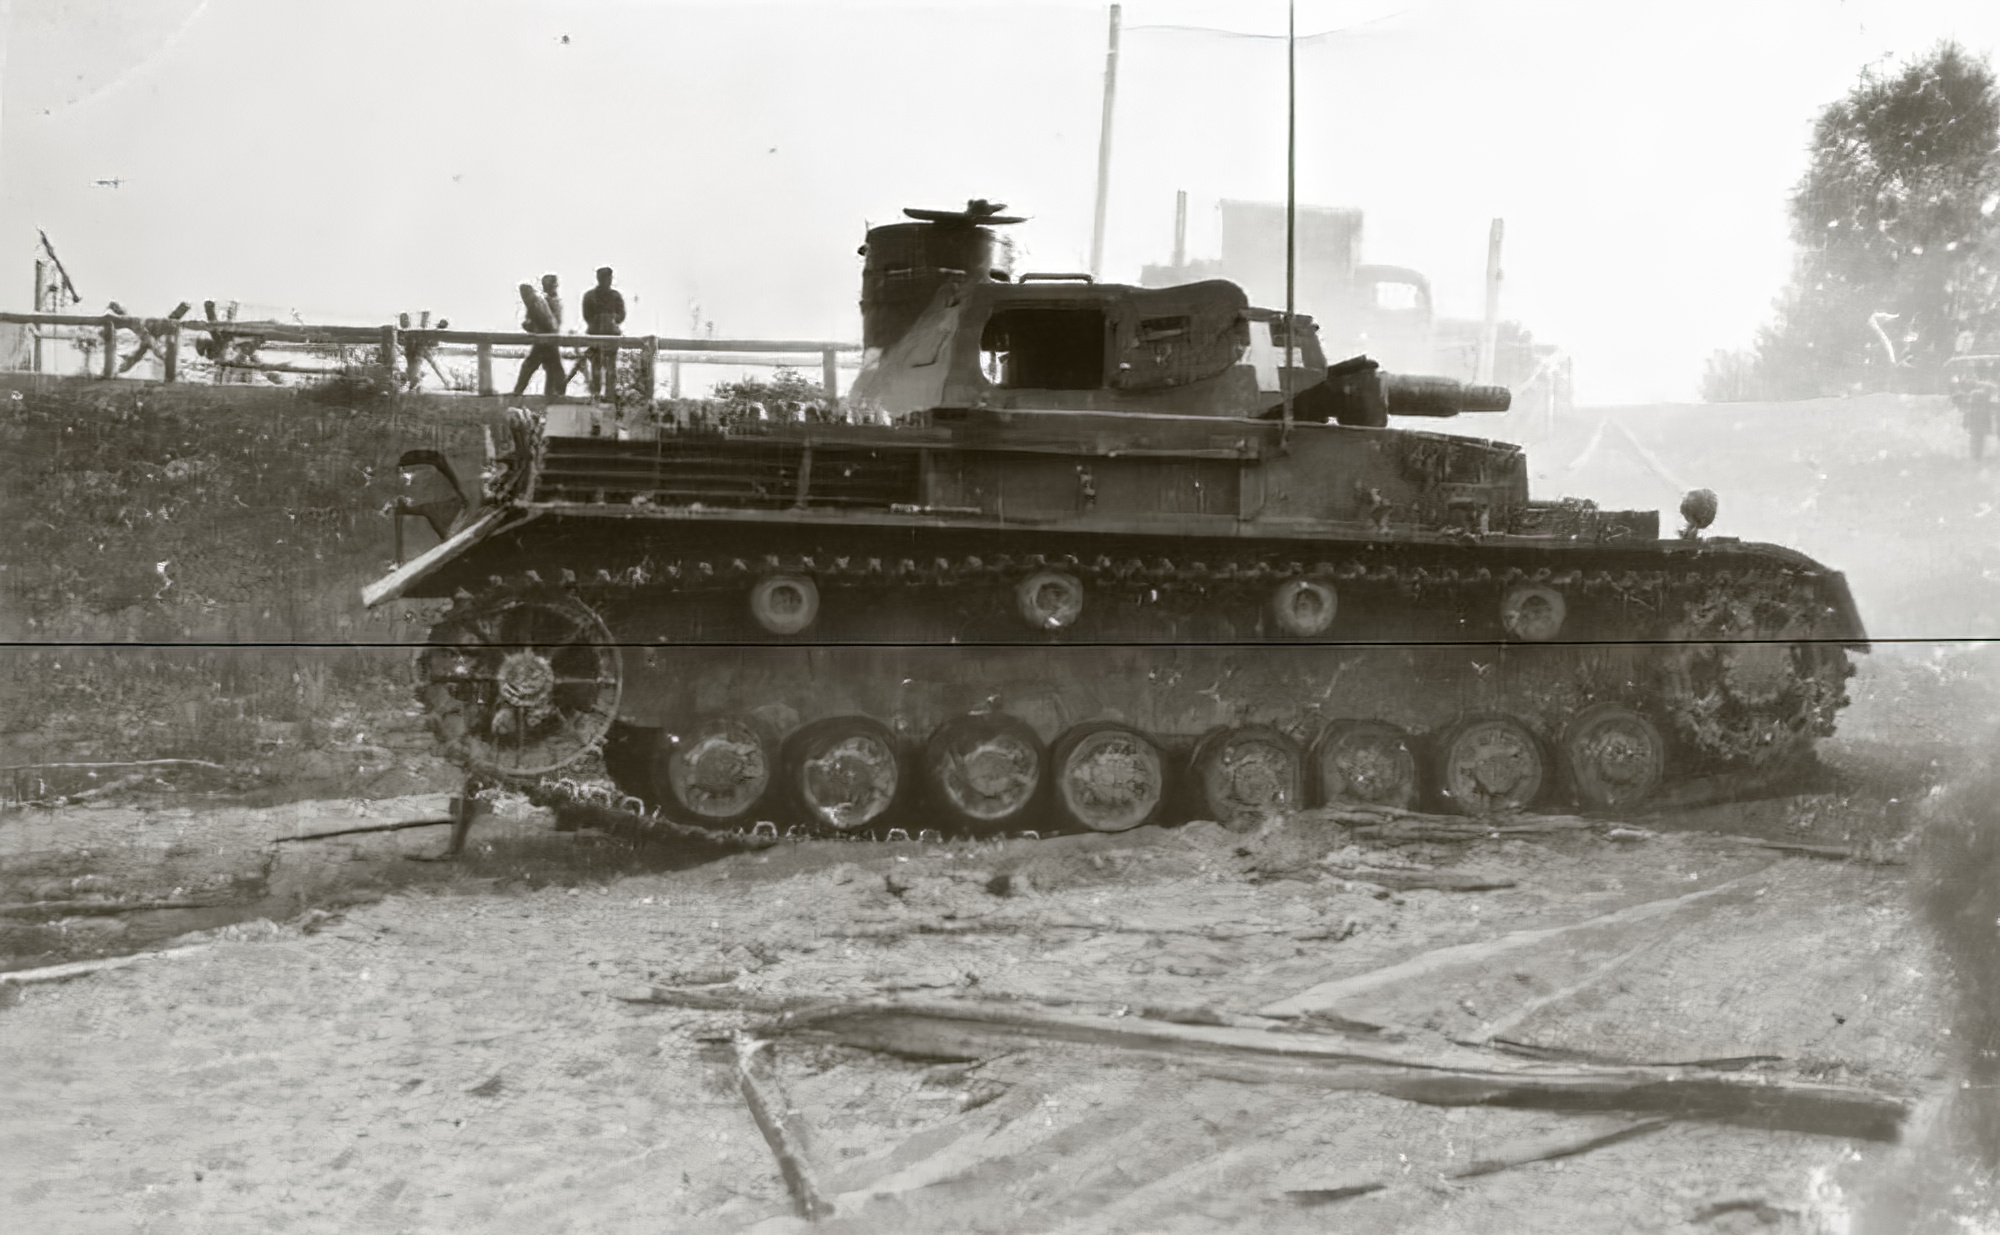 Wehrmacht Panzer III tank abandoned during battle of France May 1940 ebay 01